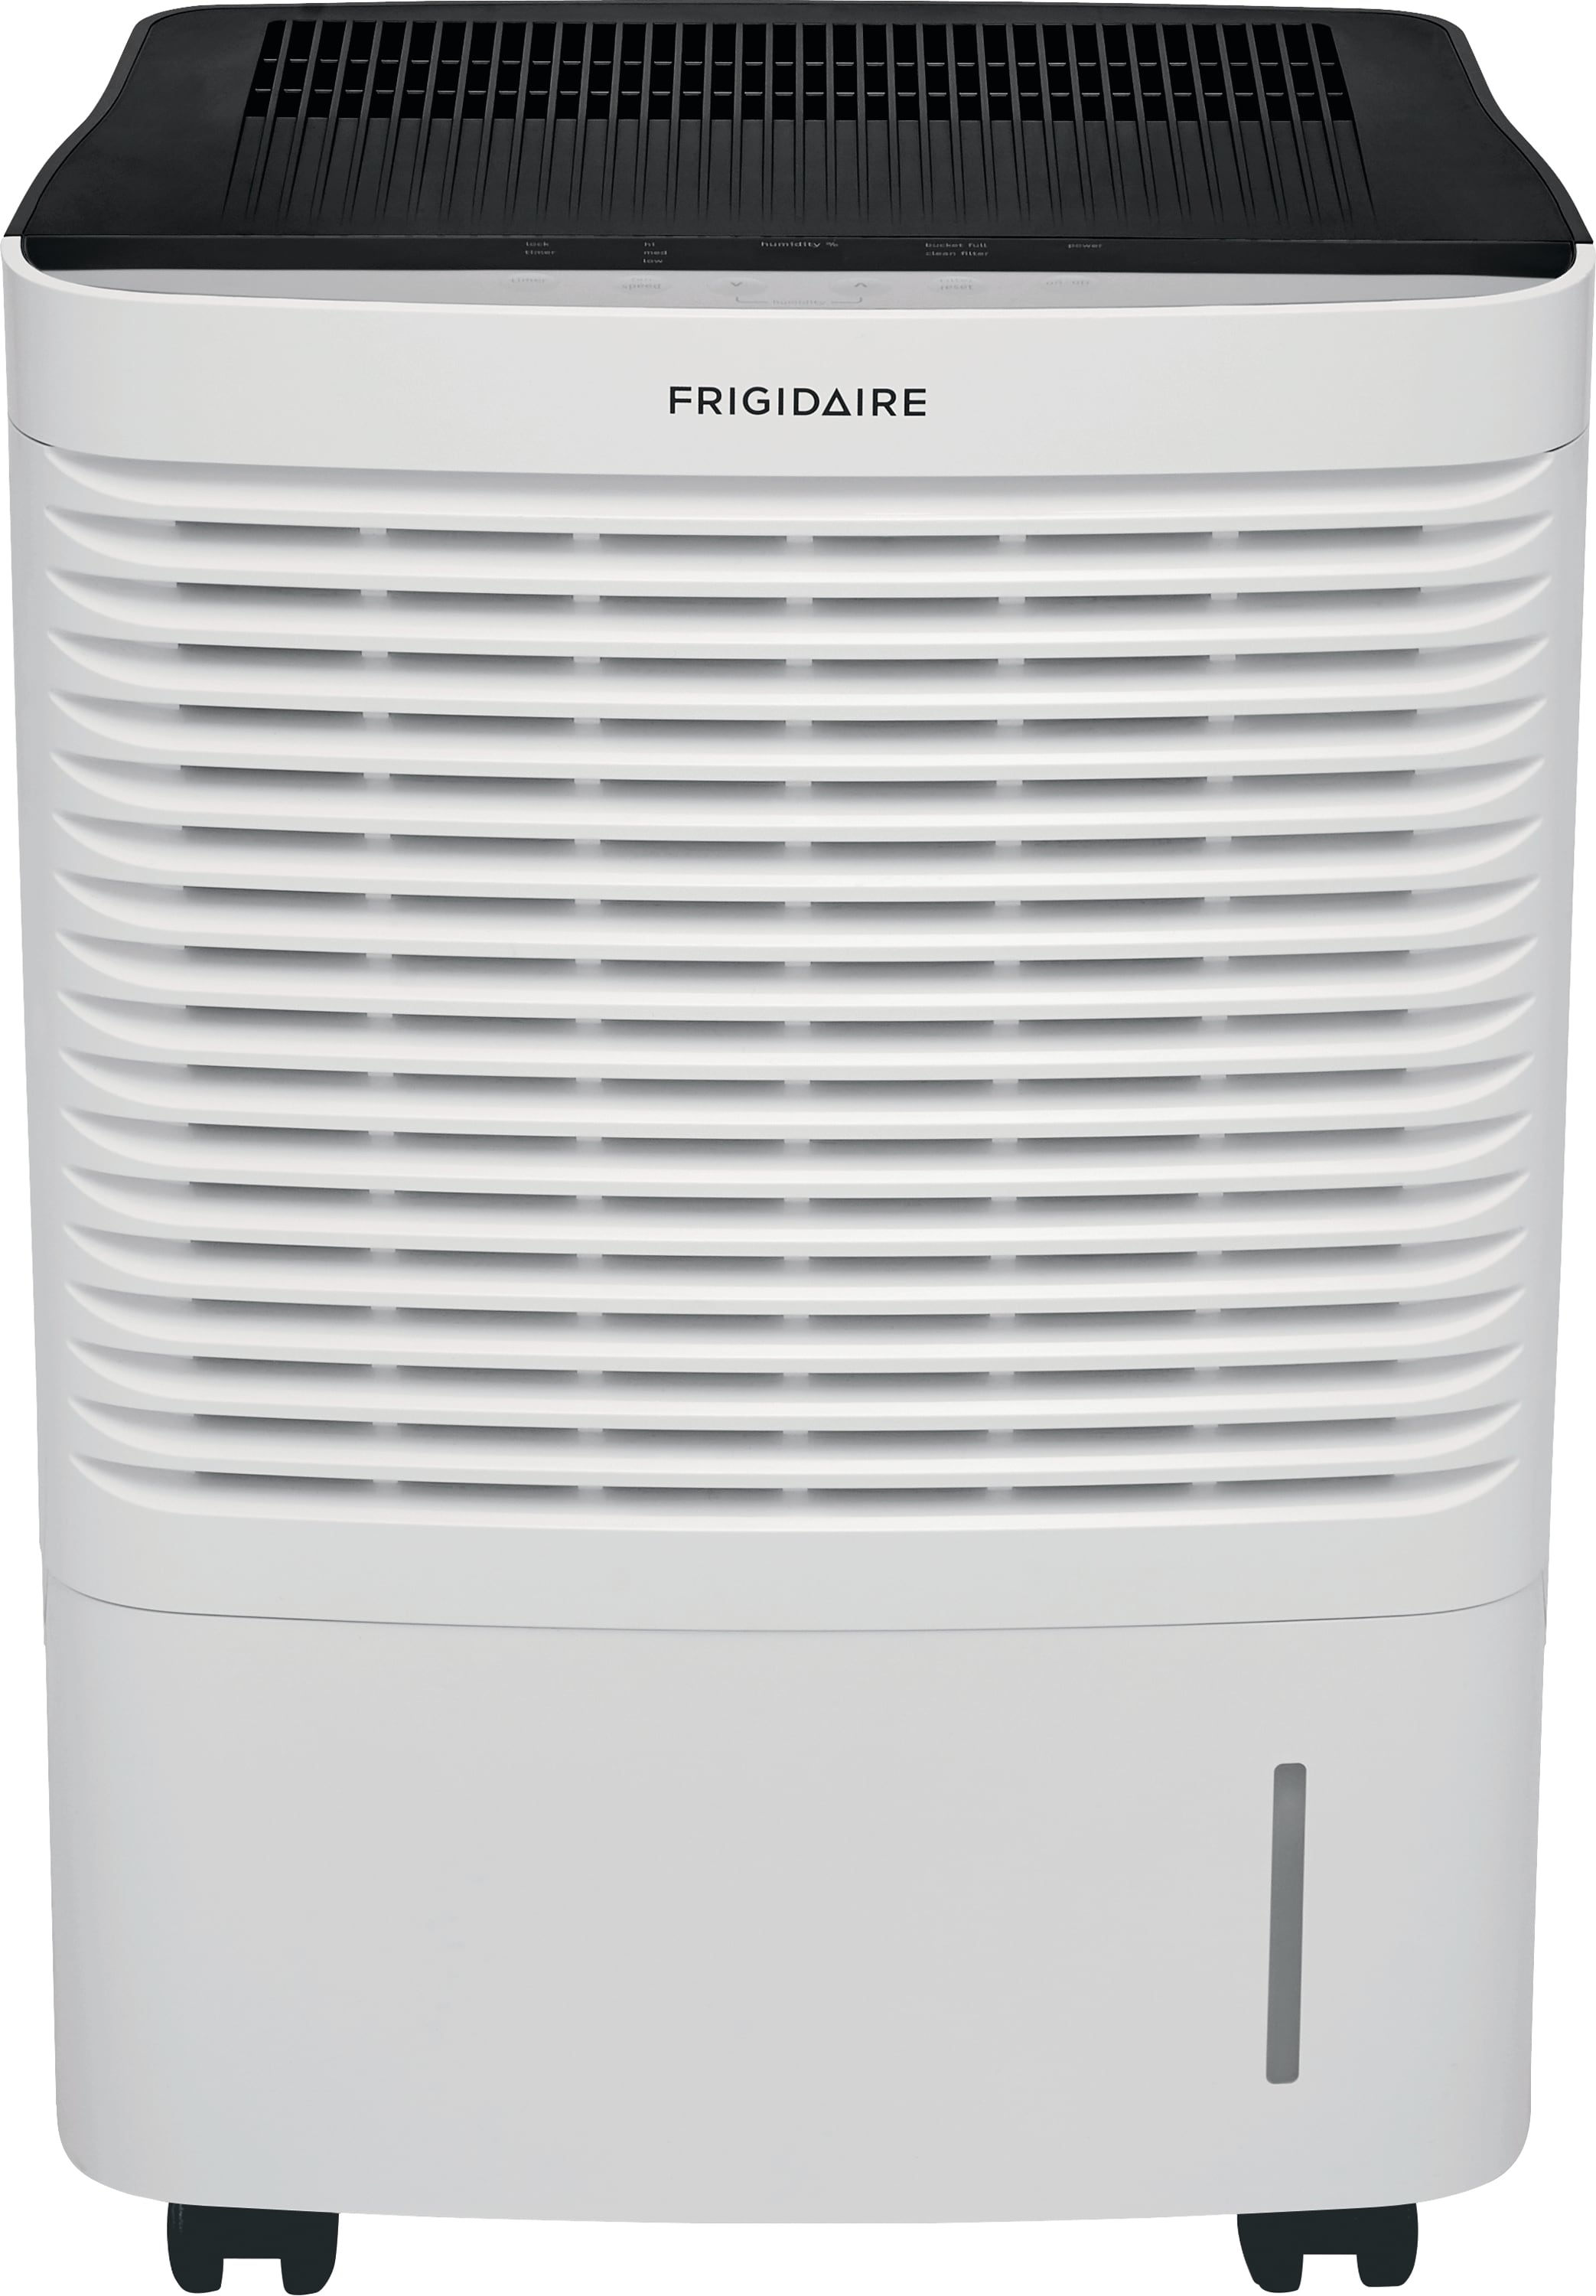 Extra Large Room 95 Pint Capacity Dehumidifier